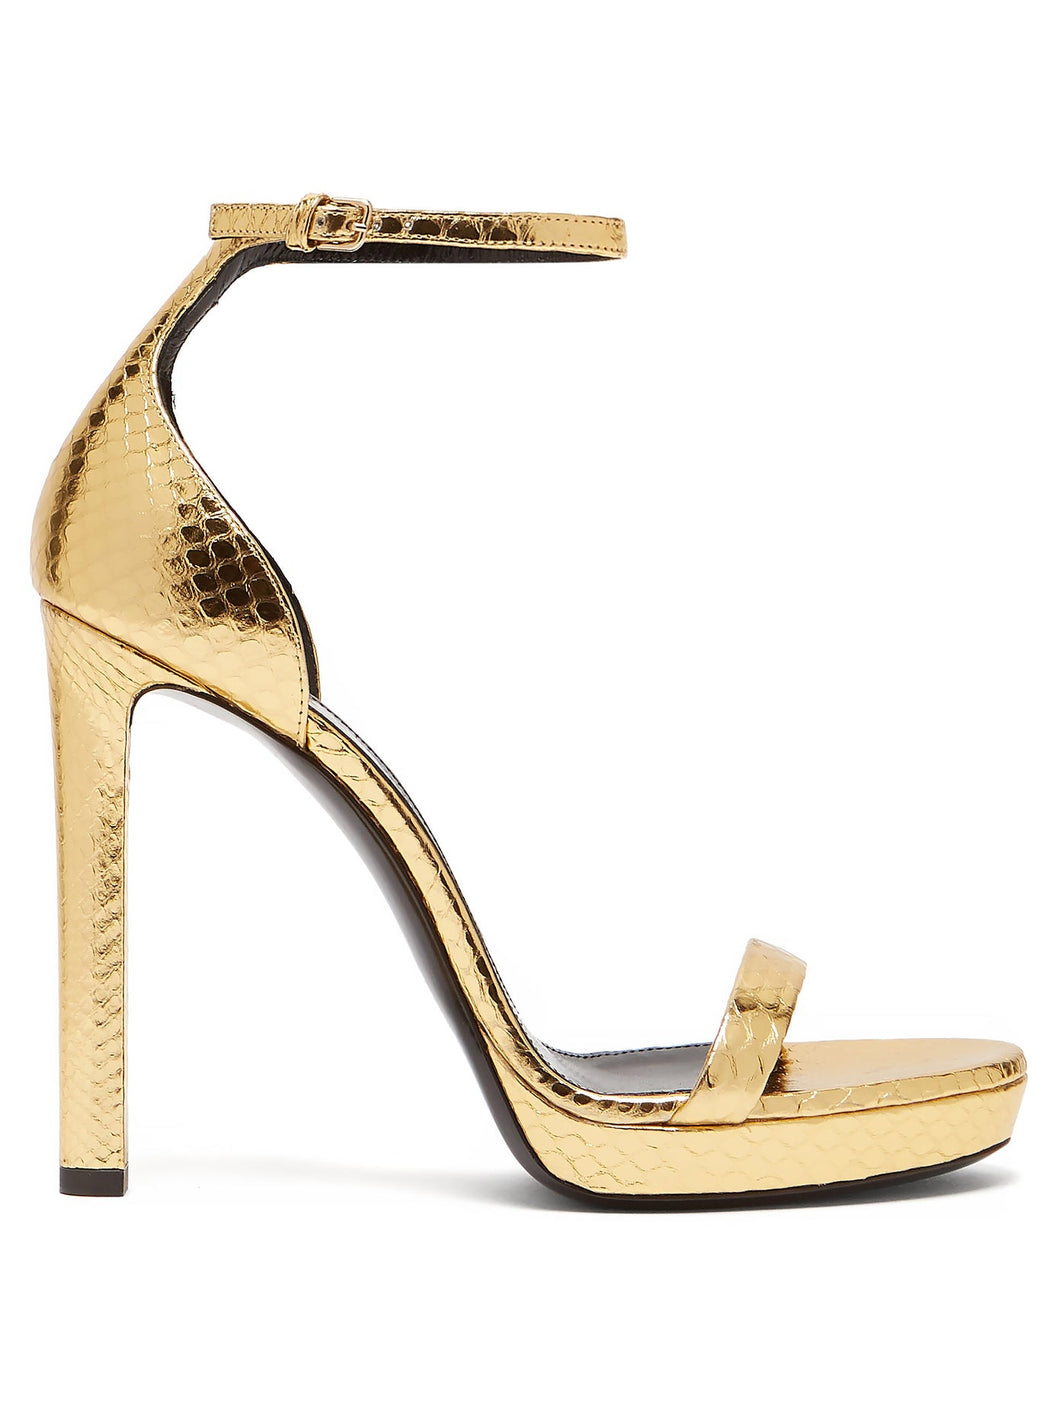 Hall 100 metallic snakeskin platform sandals